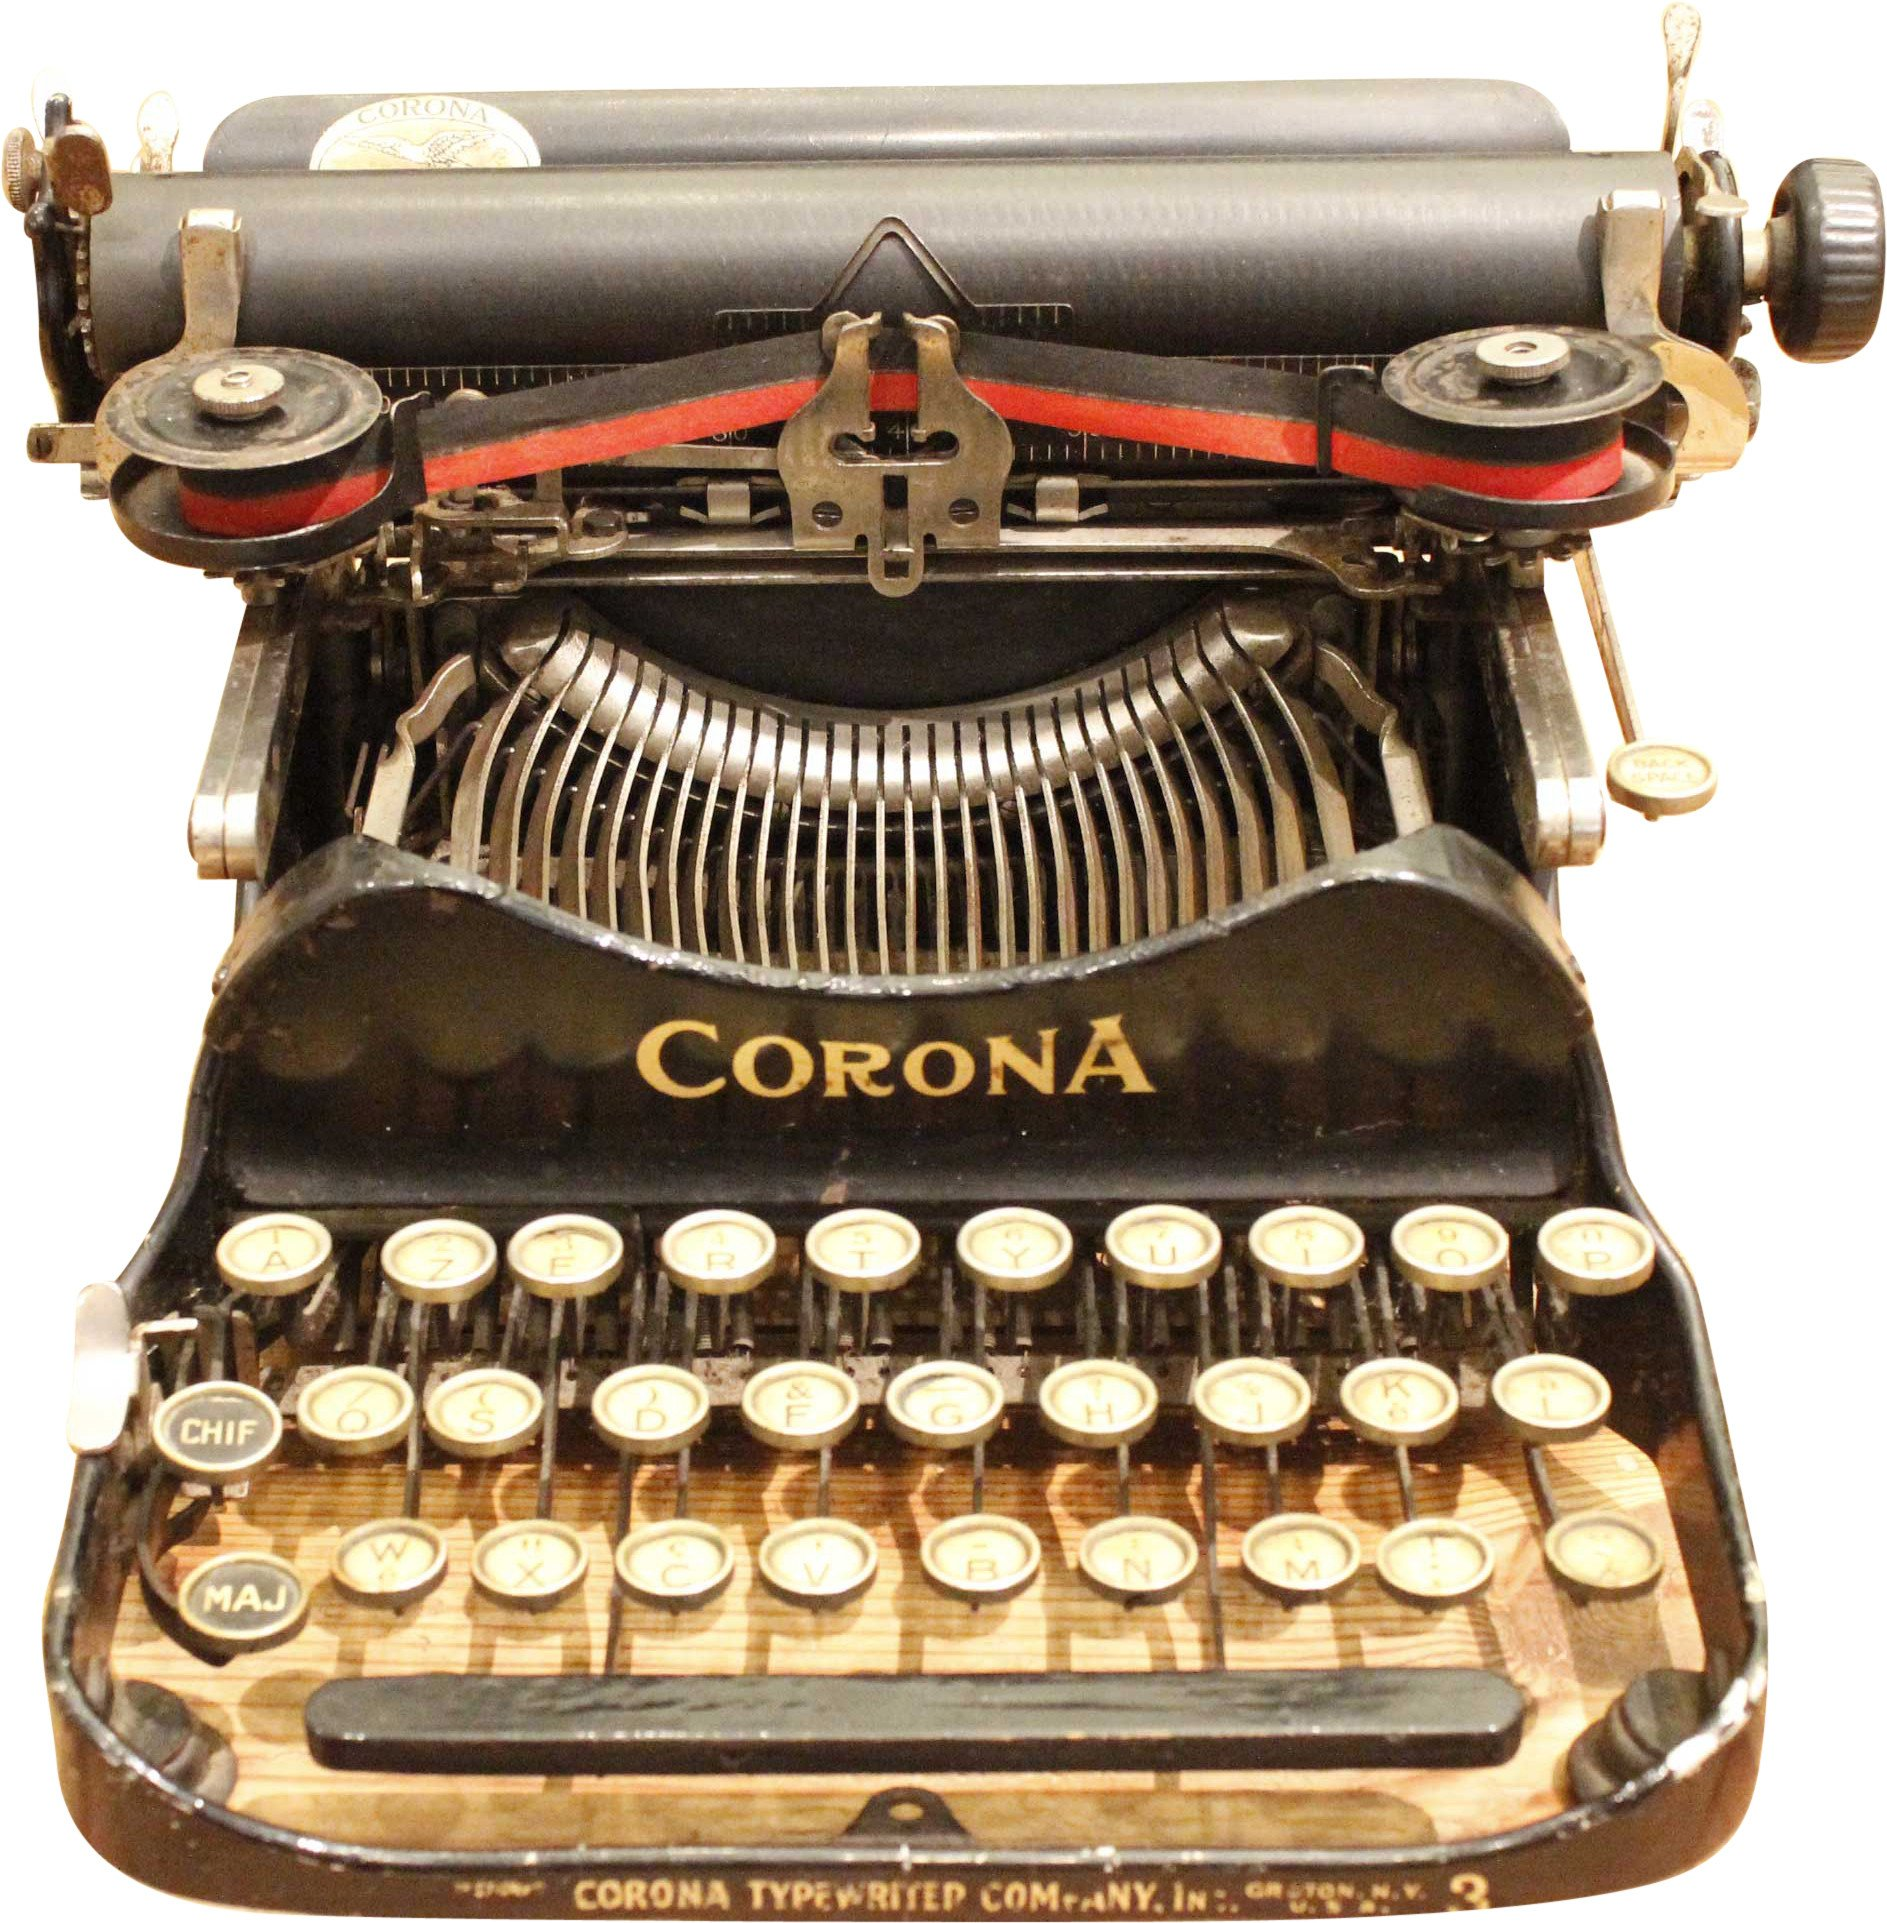 Typewriter CORONA 1917, early 20th C.